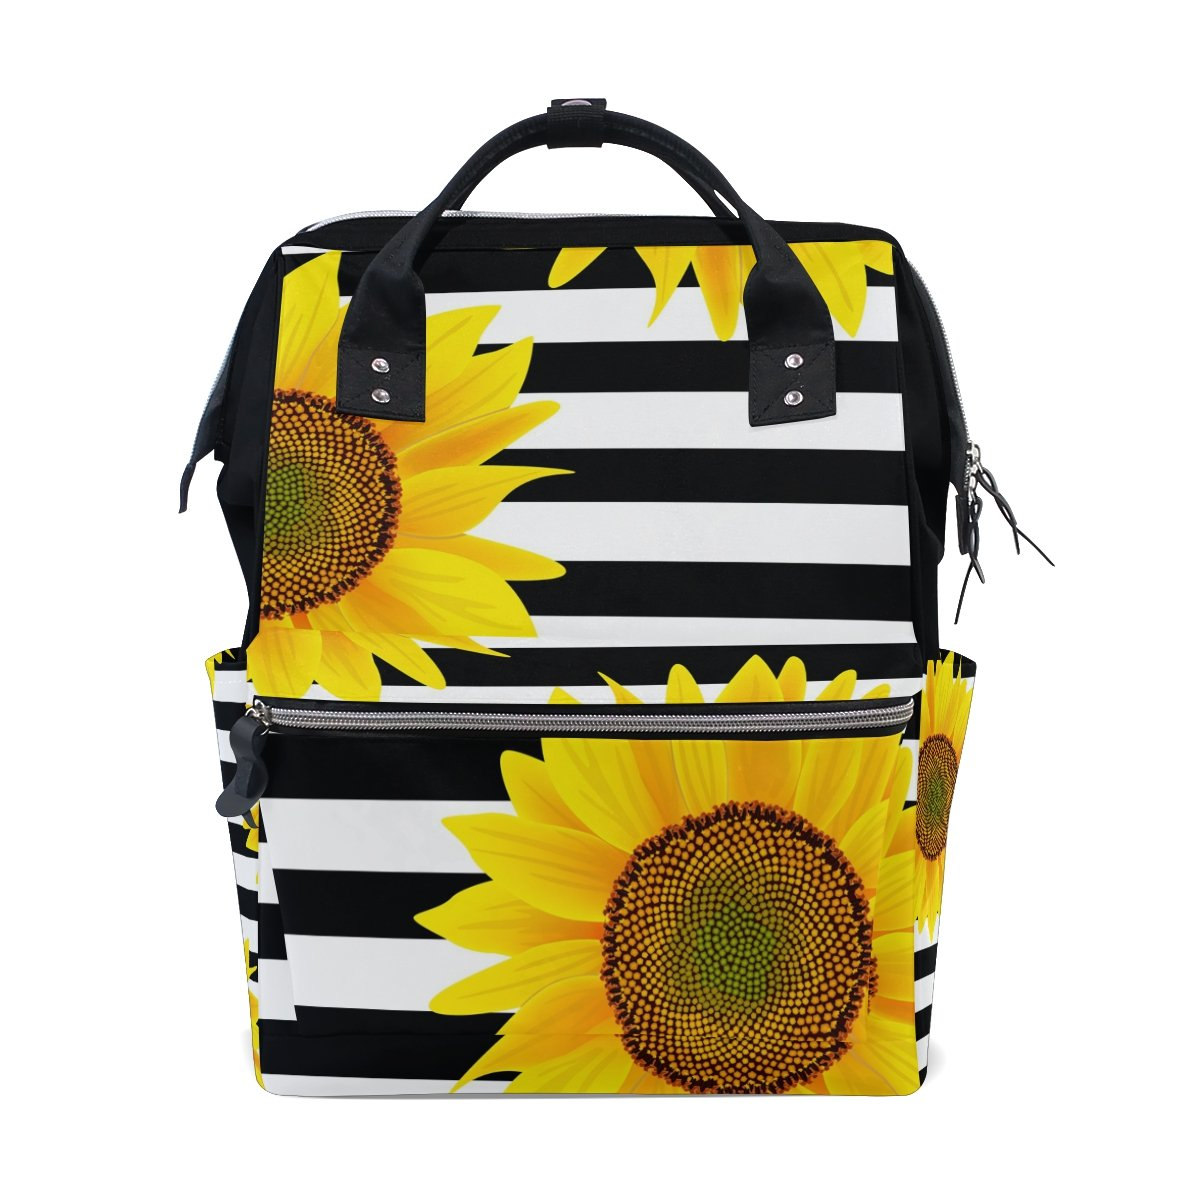 ALAZA Sunflowers On Zigzag Stripes Diaper Bags Mummy Backpack Multi Functions Large Capacity Nappy Bag Nursing Bag for Baby Care for Traveling